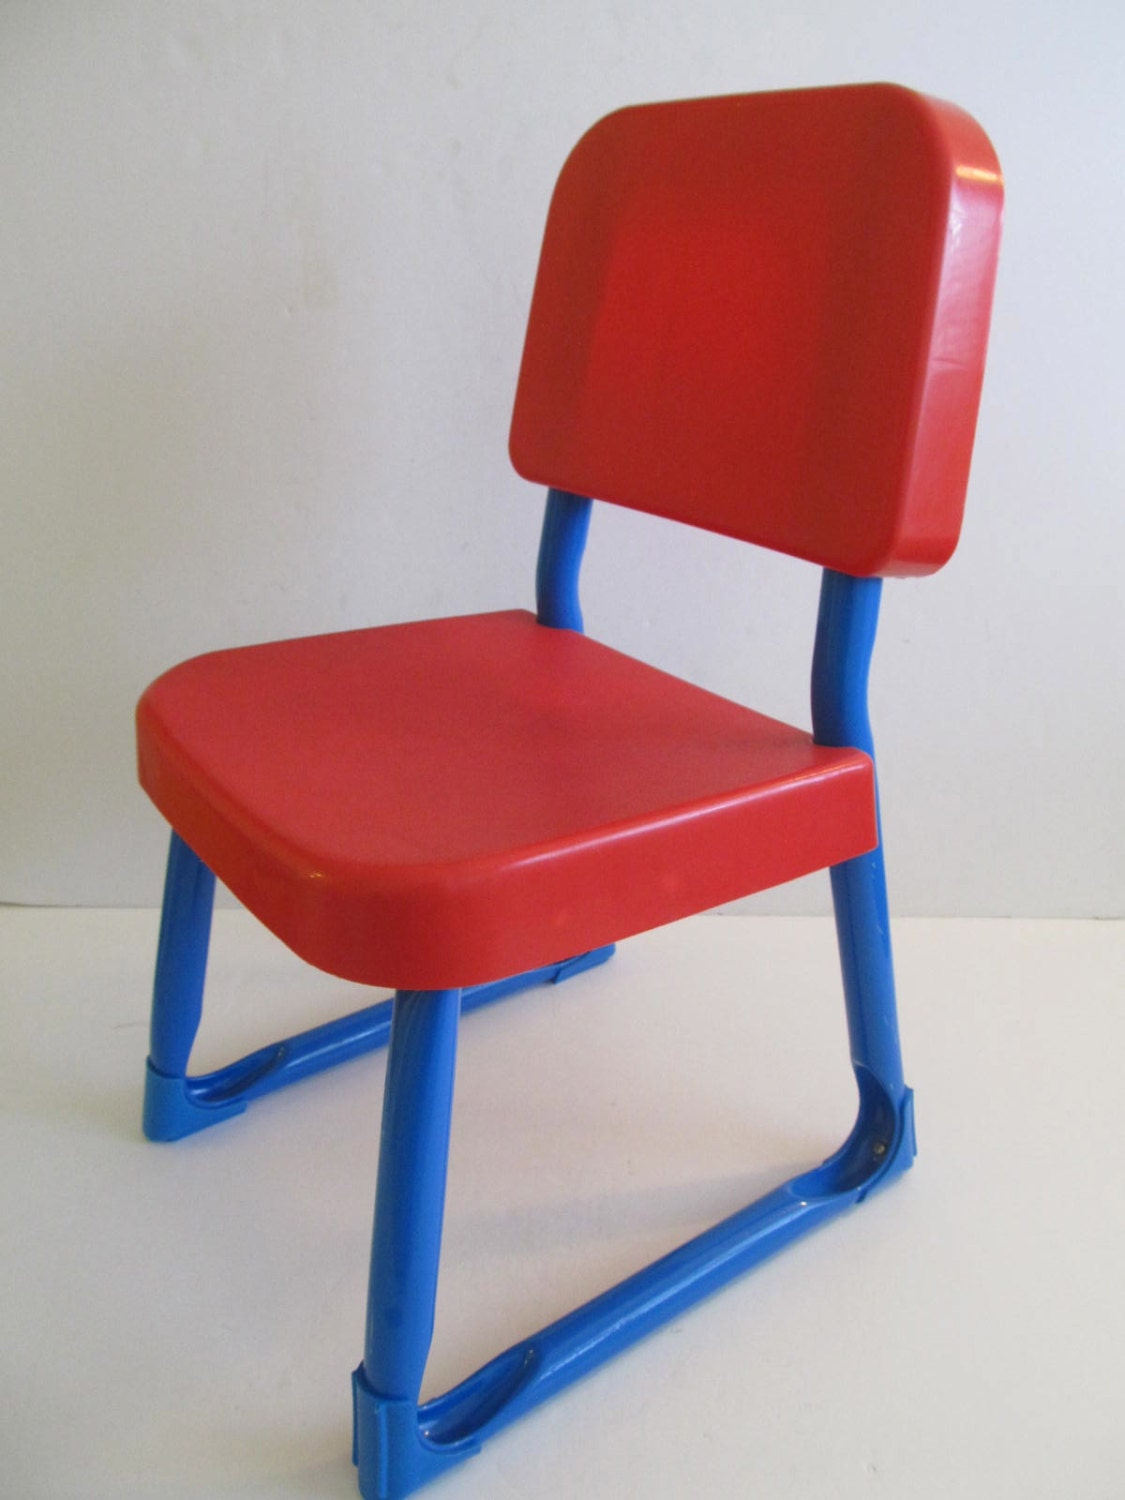 Fisher Price Chair Chairs Childrens Chairs Furniture